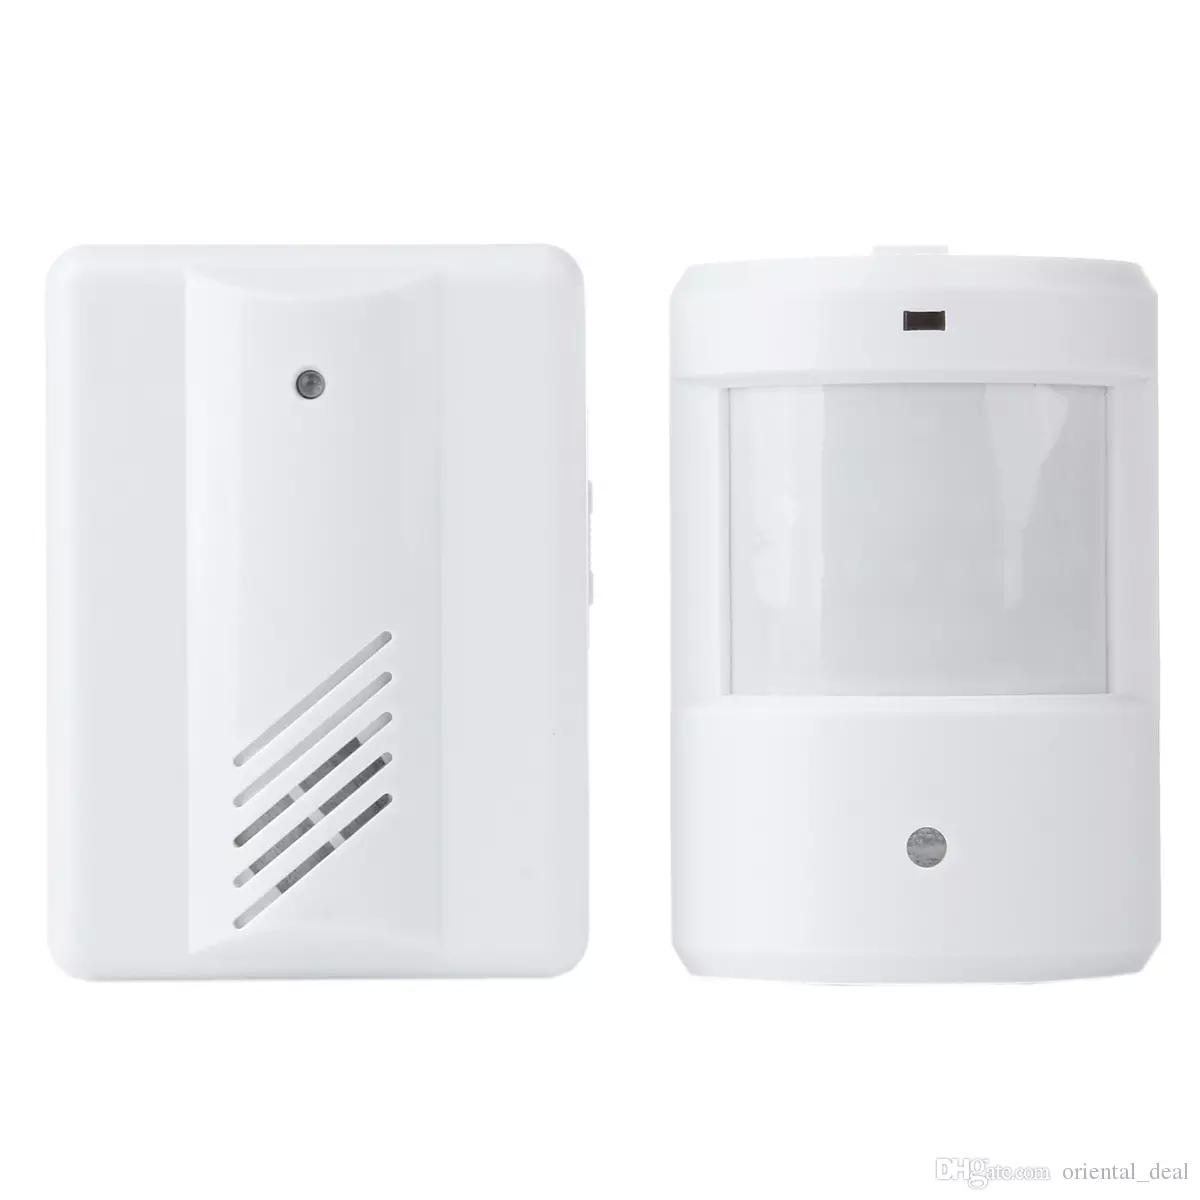 garage home motion driveway patrol promo doorbell infrared security sensor alarm wireless system new pin